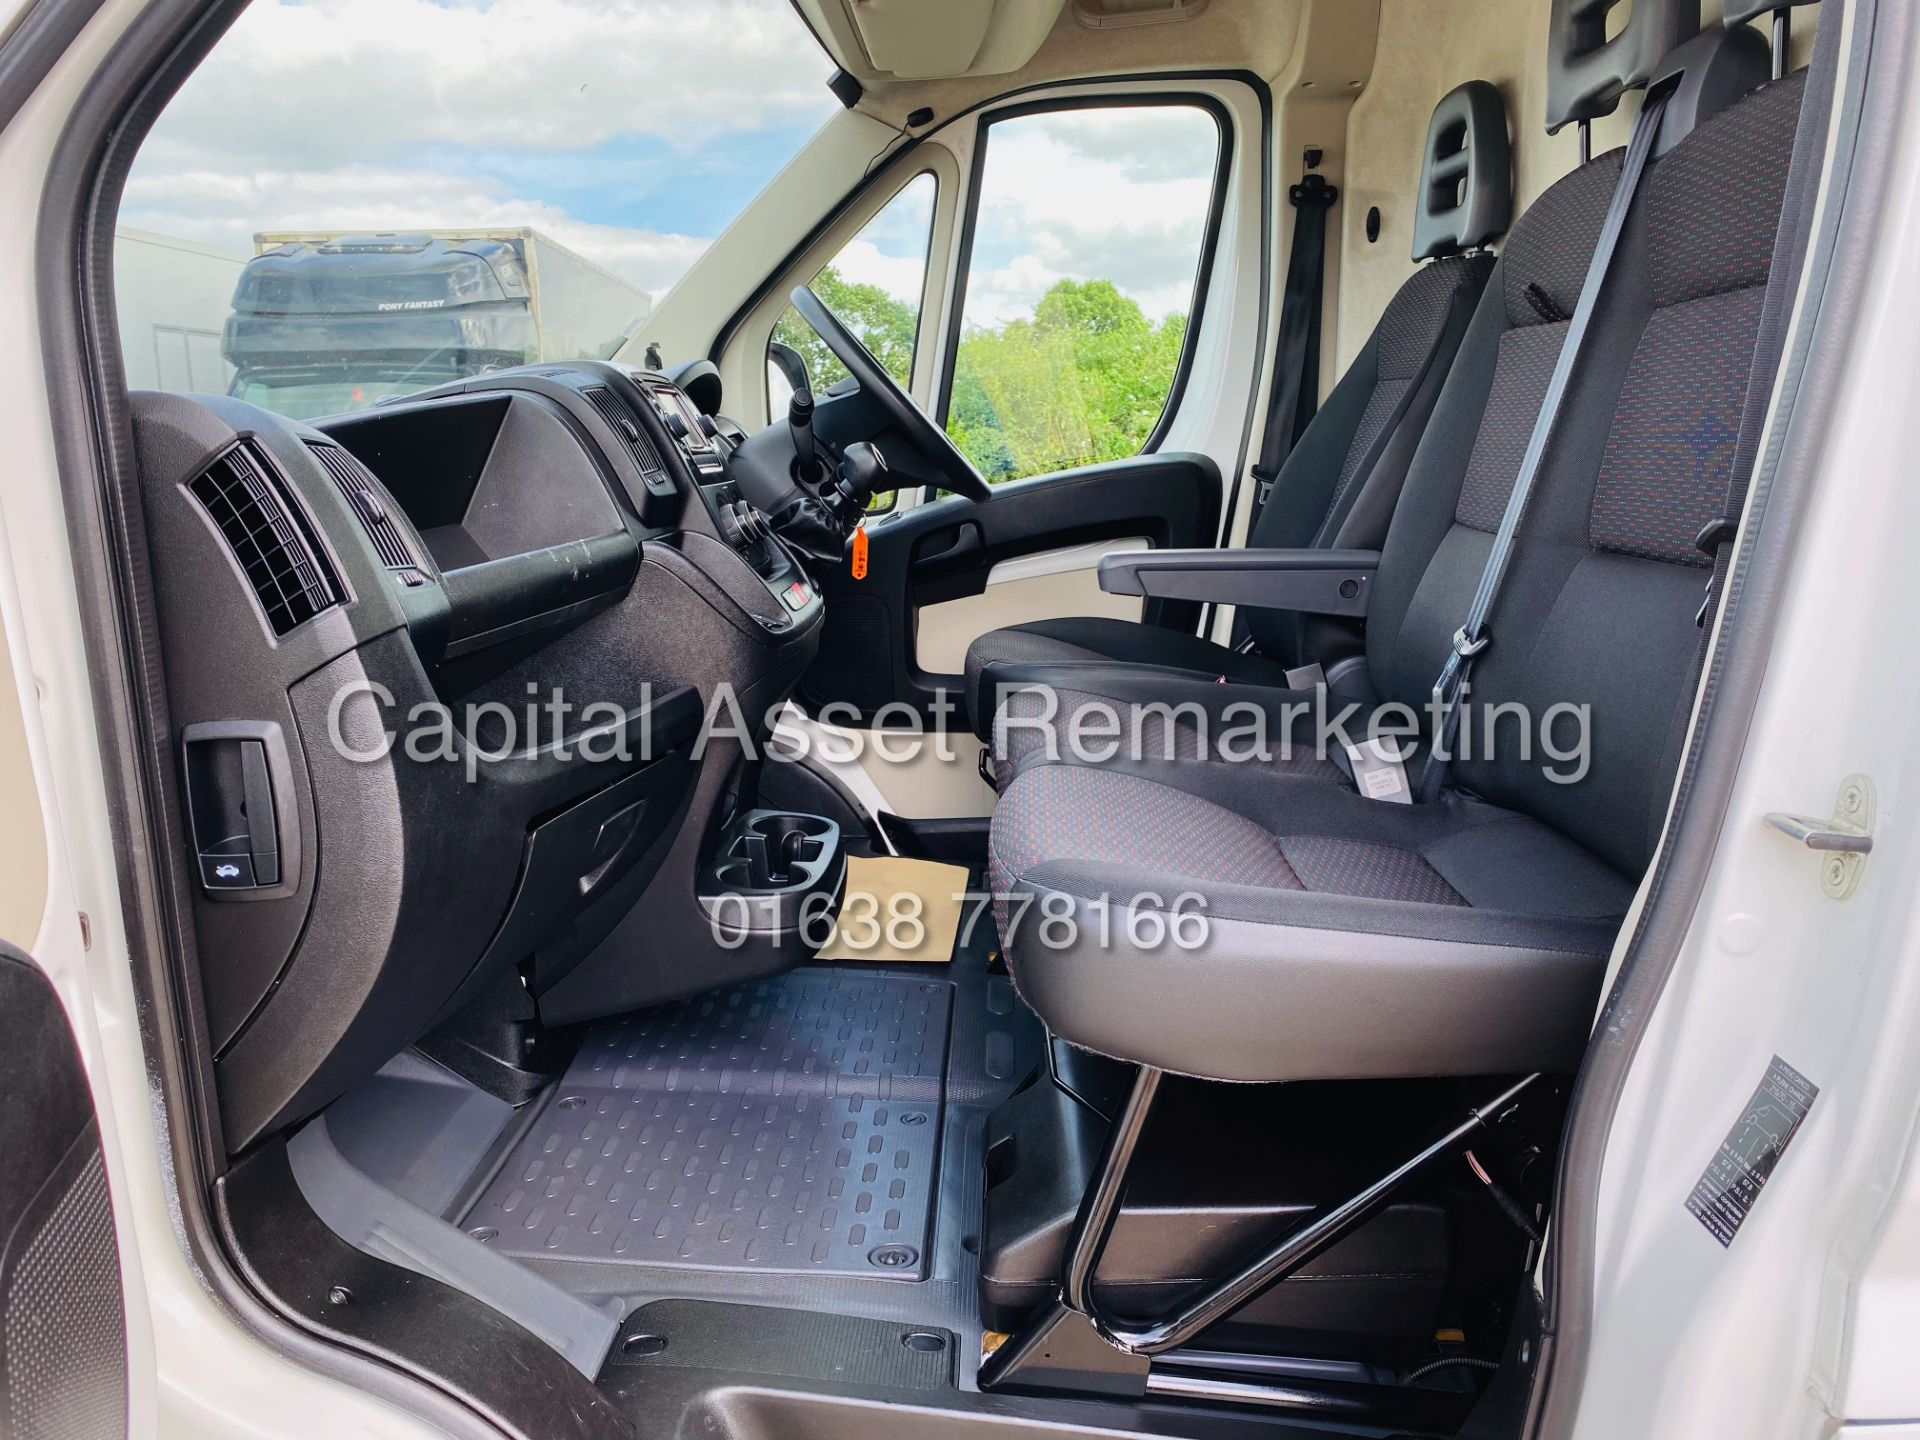 """ON SALE CITROEN RELAY 2.0 BLUE-HDI """"ENTERPRISE"""" L1H1 (2019 MODEL) AIR CON 6882 MILES ON THE CLOCK - Image 25 of 28"""